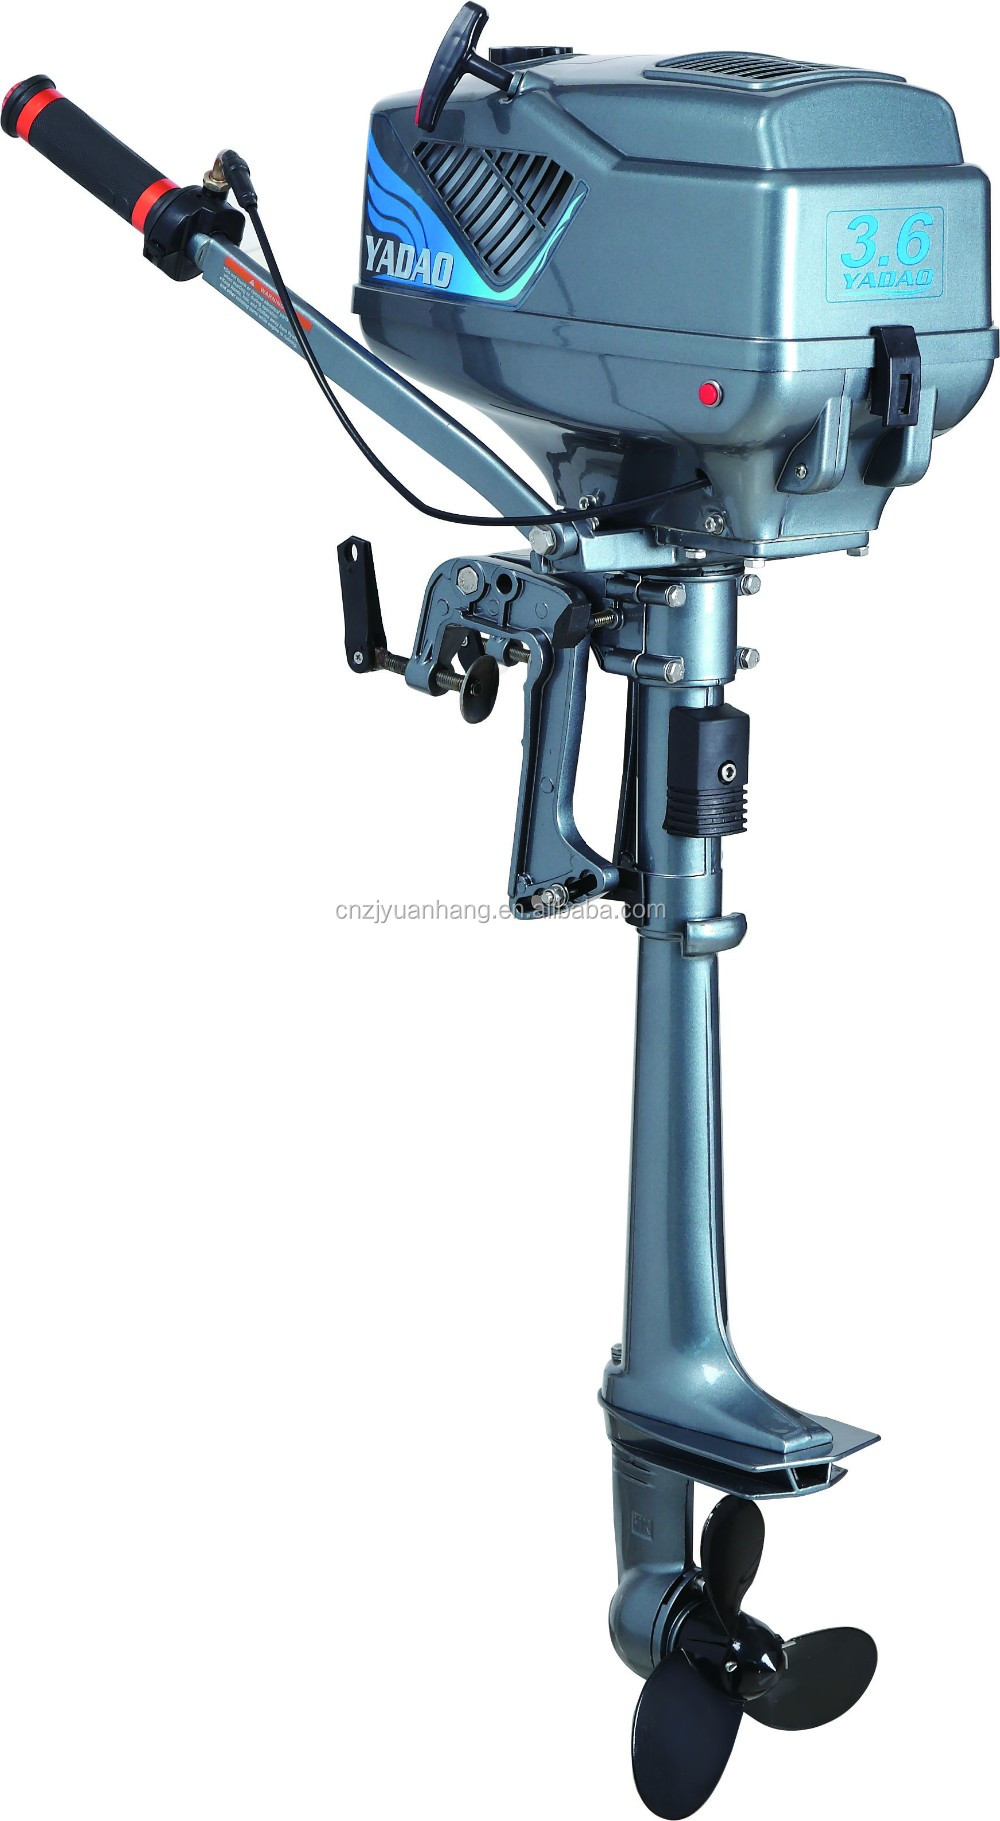 New 2 Stroke Gasoline Outboard Boat Engine View